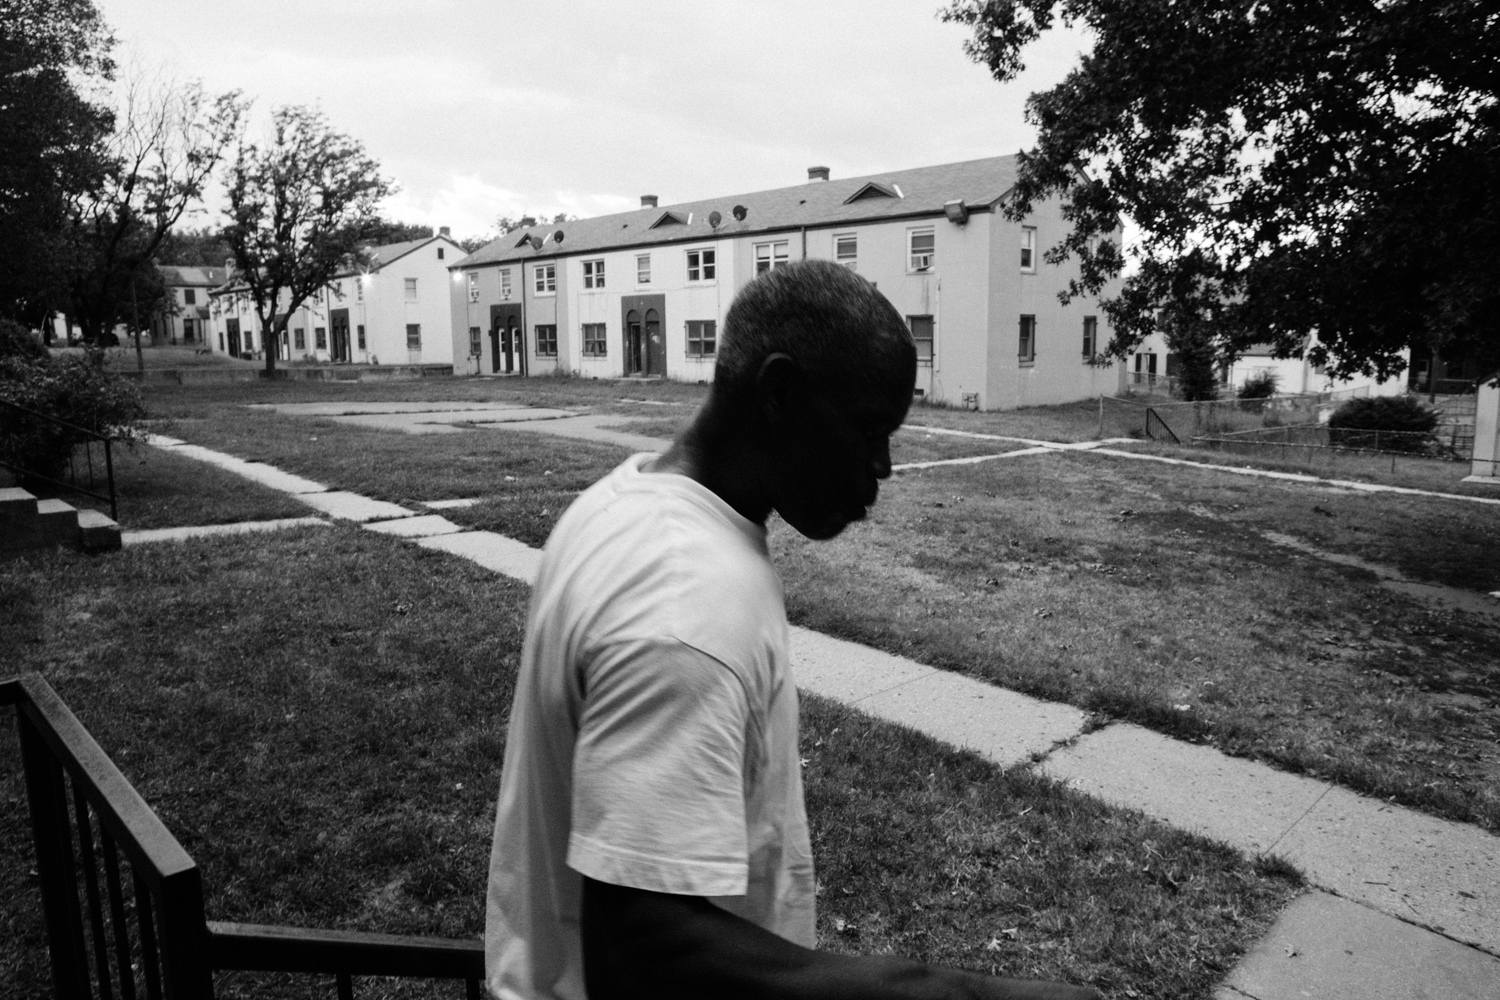 "Charles ""Chit"" lived in Barry Farm when he was 9 years old, at a time when D.C. was considered the murder capital of the world. After 23 years of incarceration for homicide, he returned to Barry Farm as a homeless man. He stays at a nearby shelter, but he visits Barry Farm everyday. He says it will always be his home. September 10, 2016."